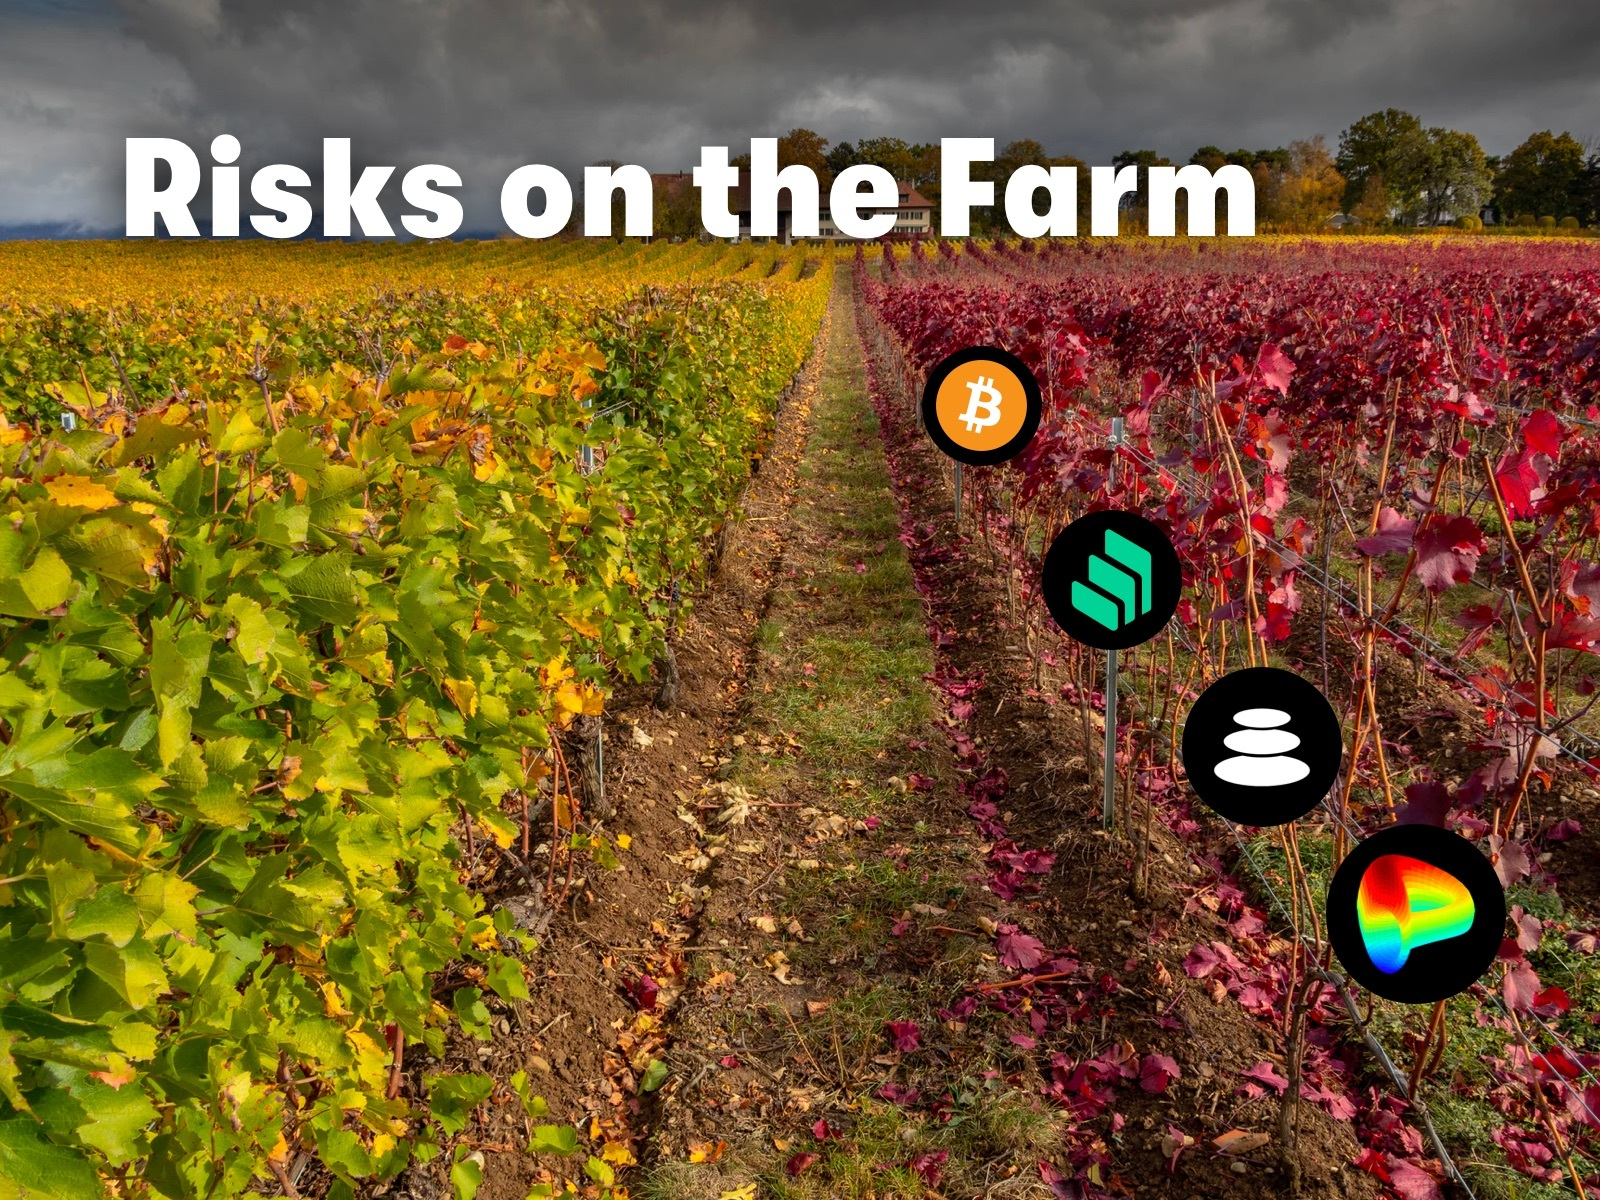 Risks on the Farm - How to Yield Farm Safely